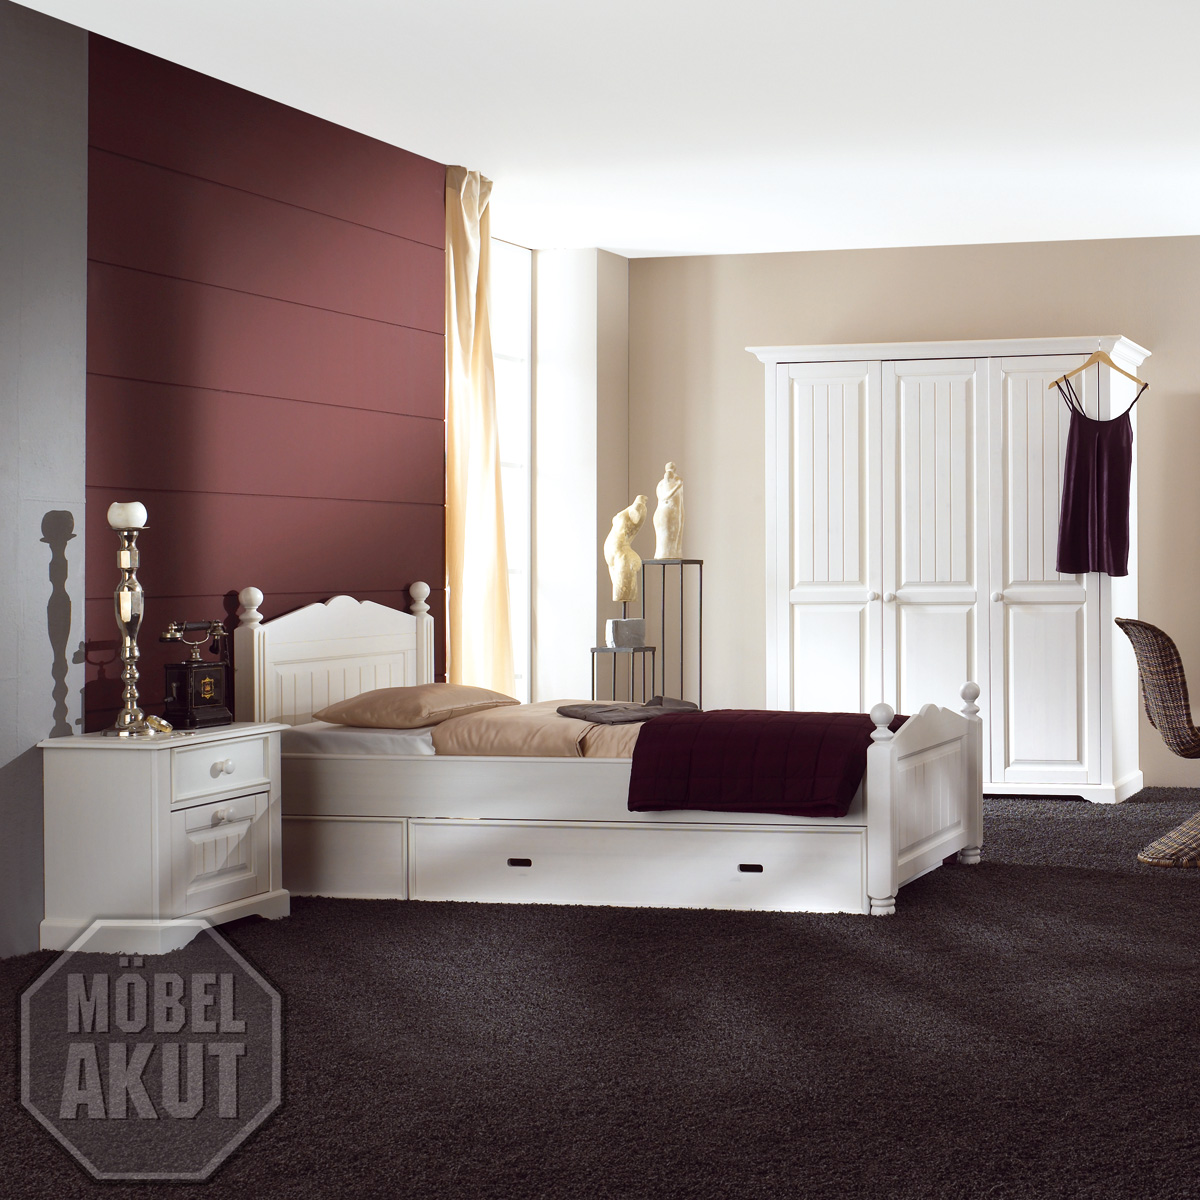 3 tlg jugendzimmer luzi kiefer massiv wei neu. Black Bedroom Furniture Sets. Home Design Ideas